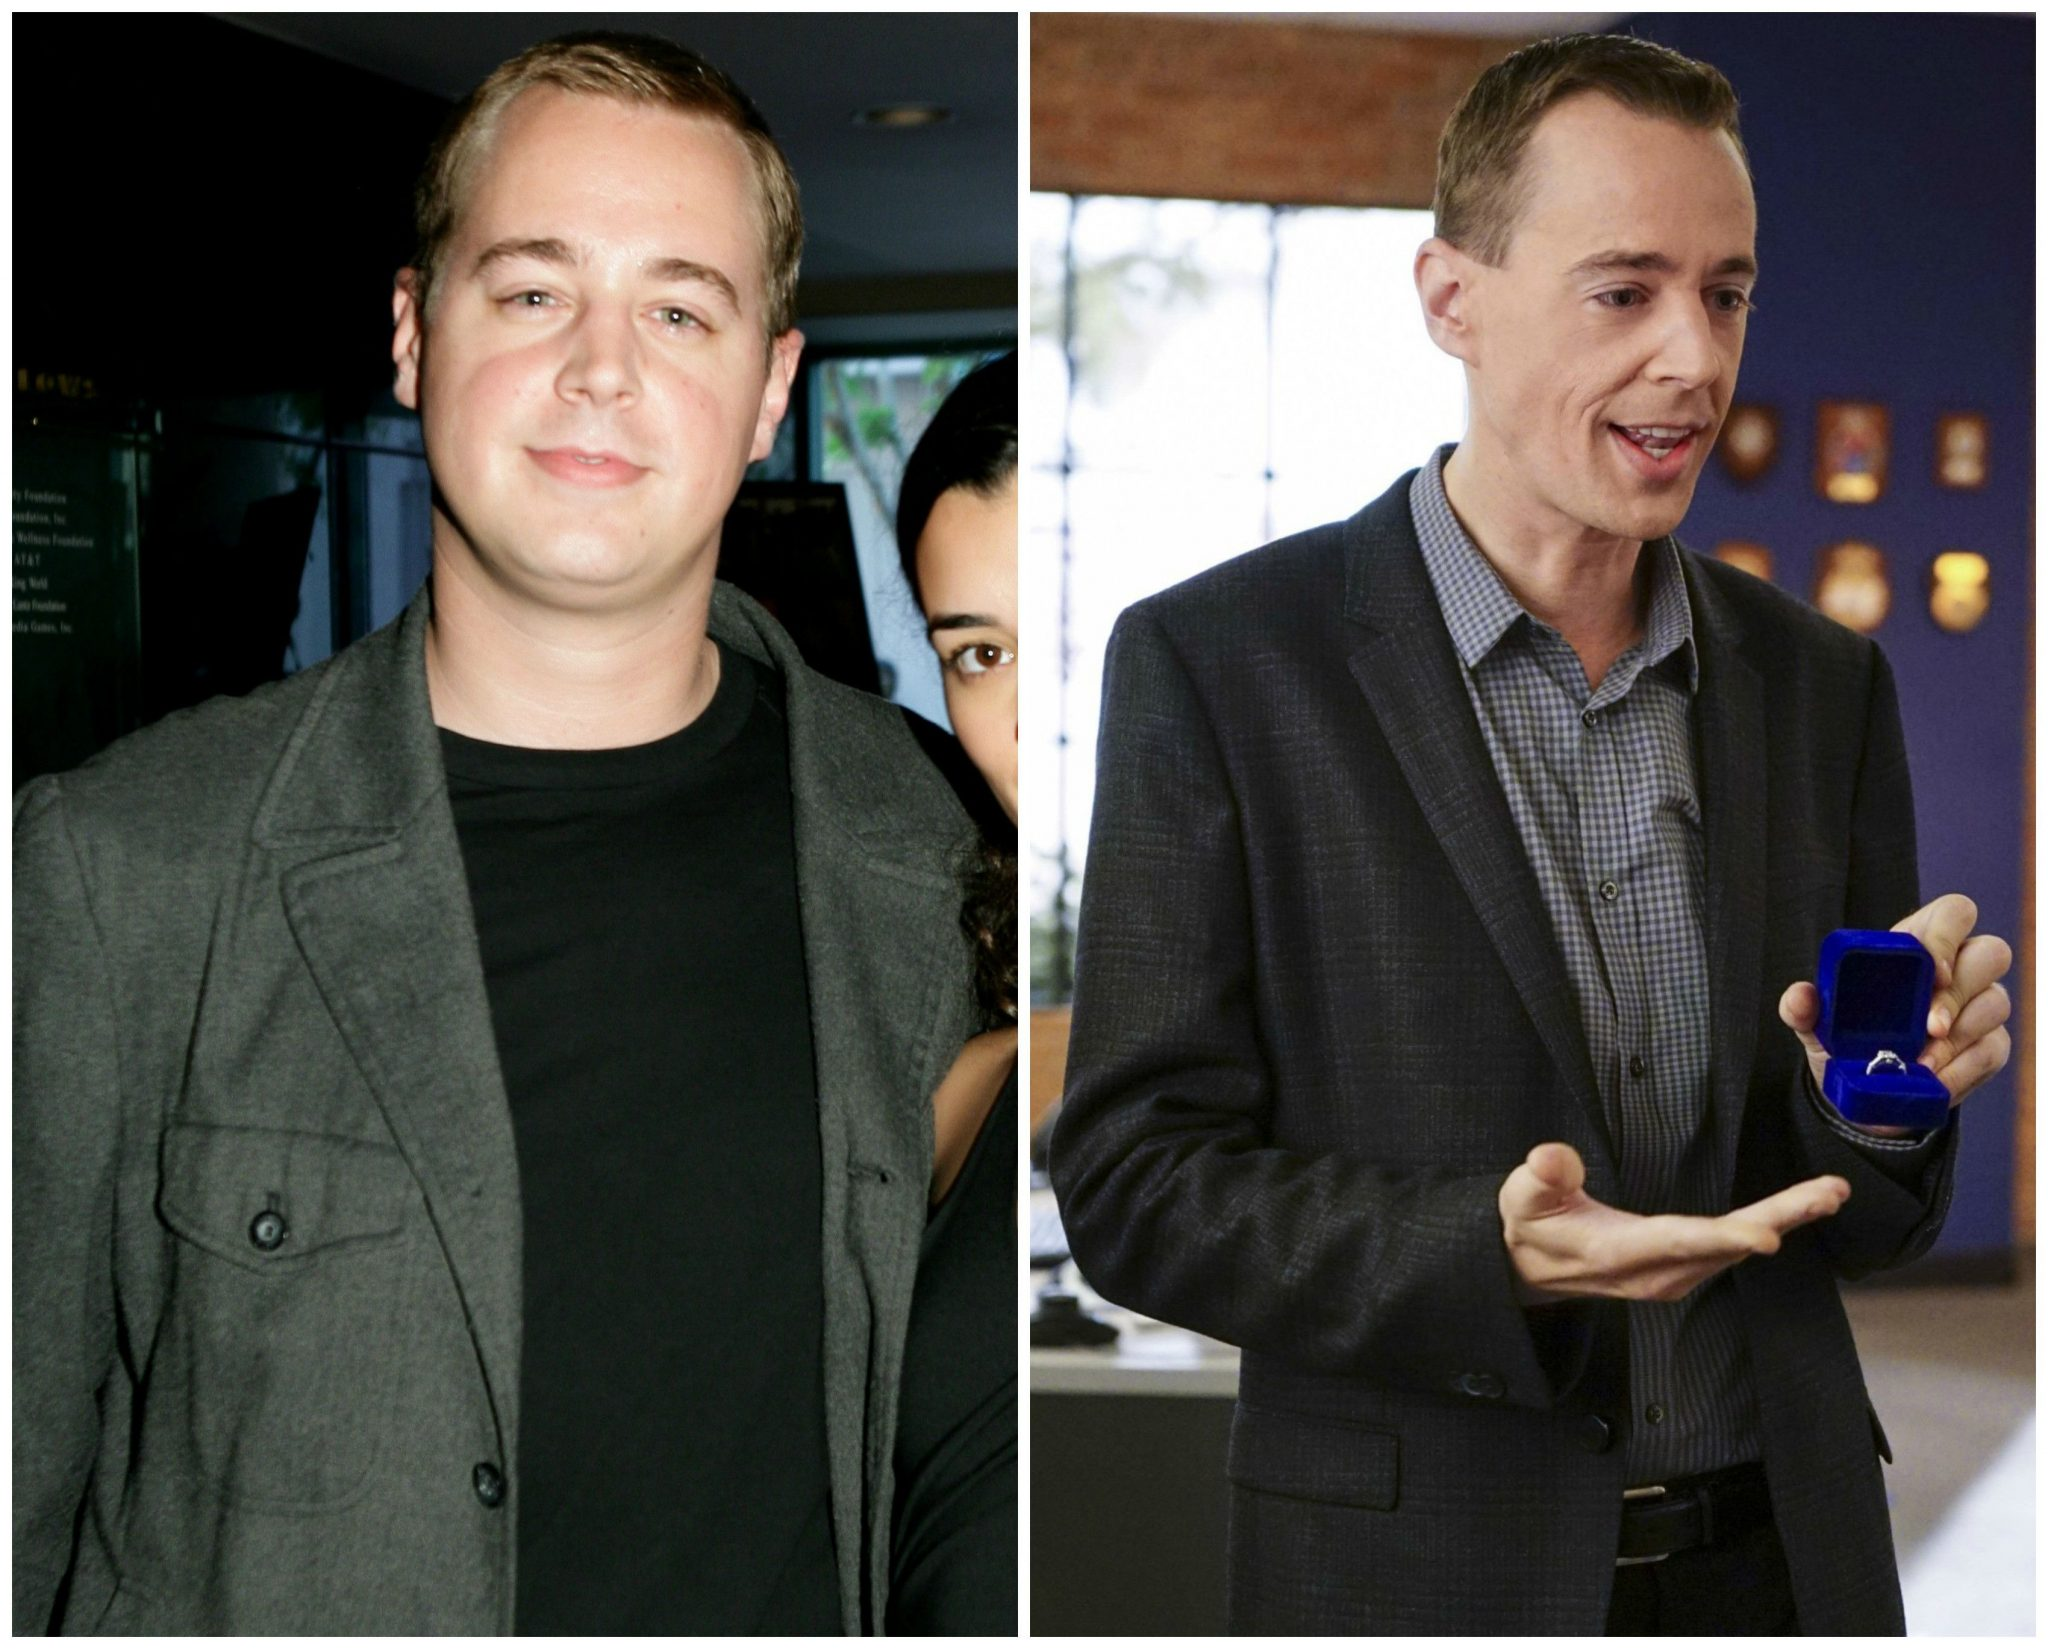 Sean Murray Weight Loss (Diet That Led to 40-pound Weight Loss)